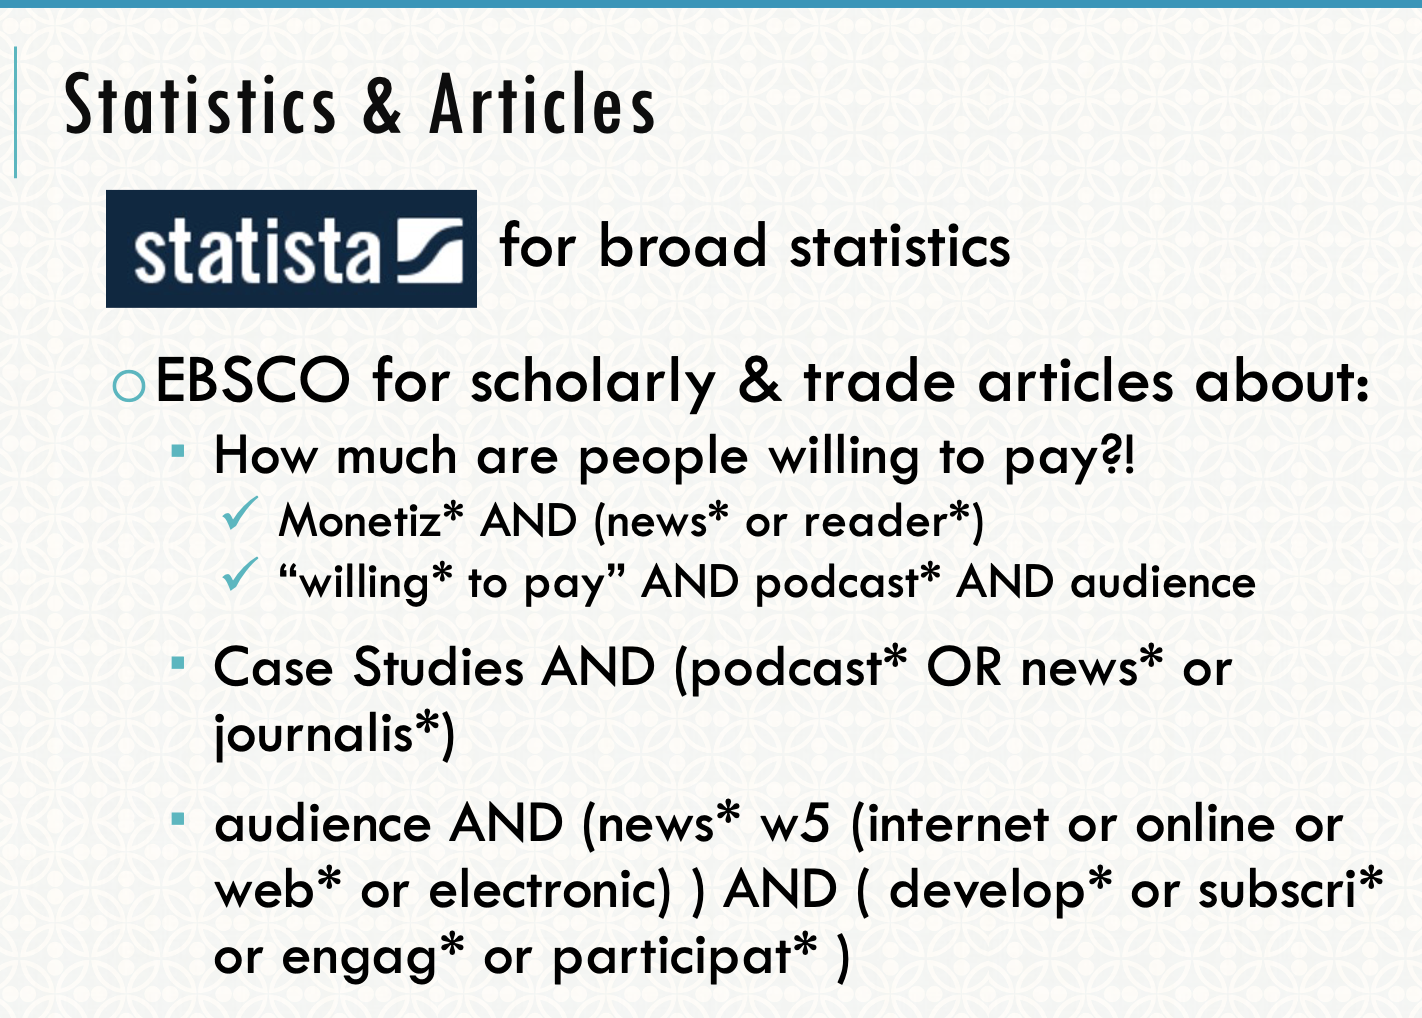 Search strings to find articles in EBSCO